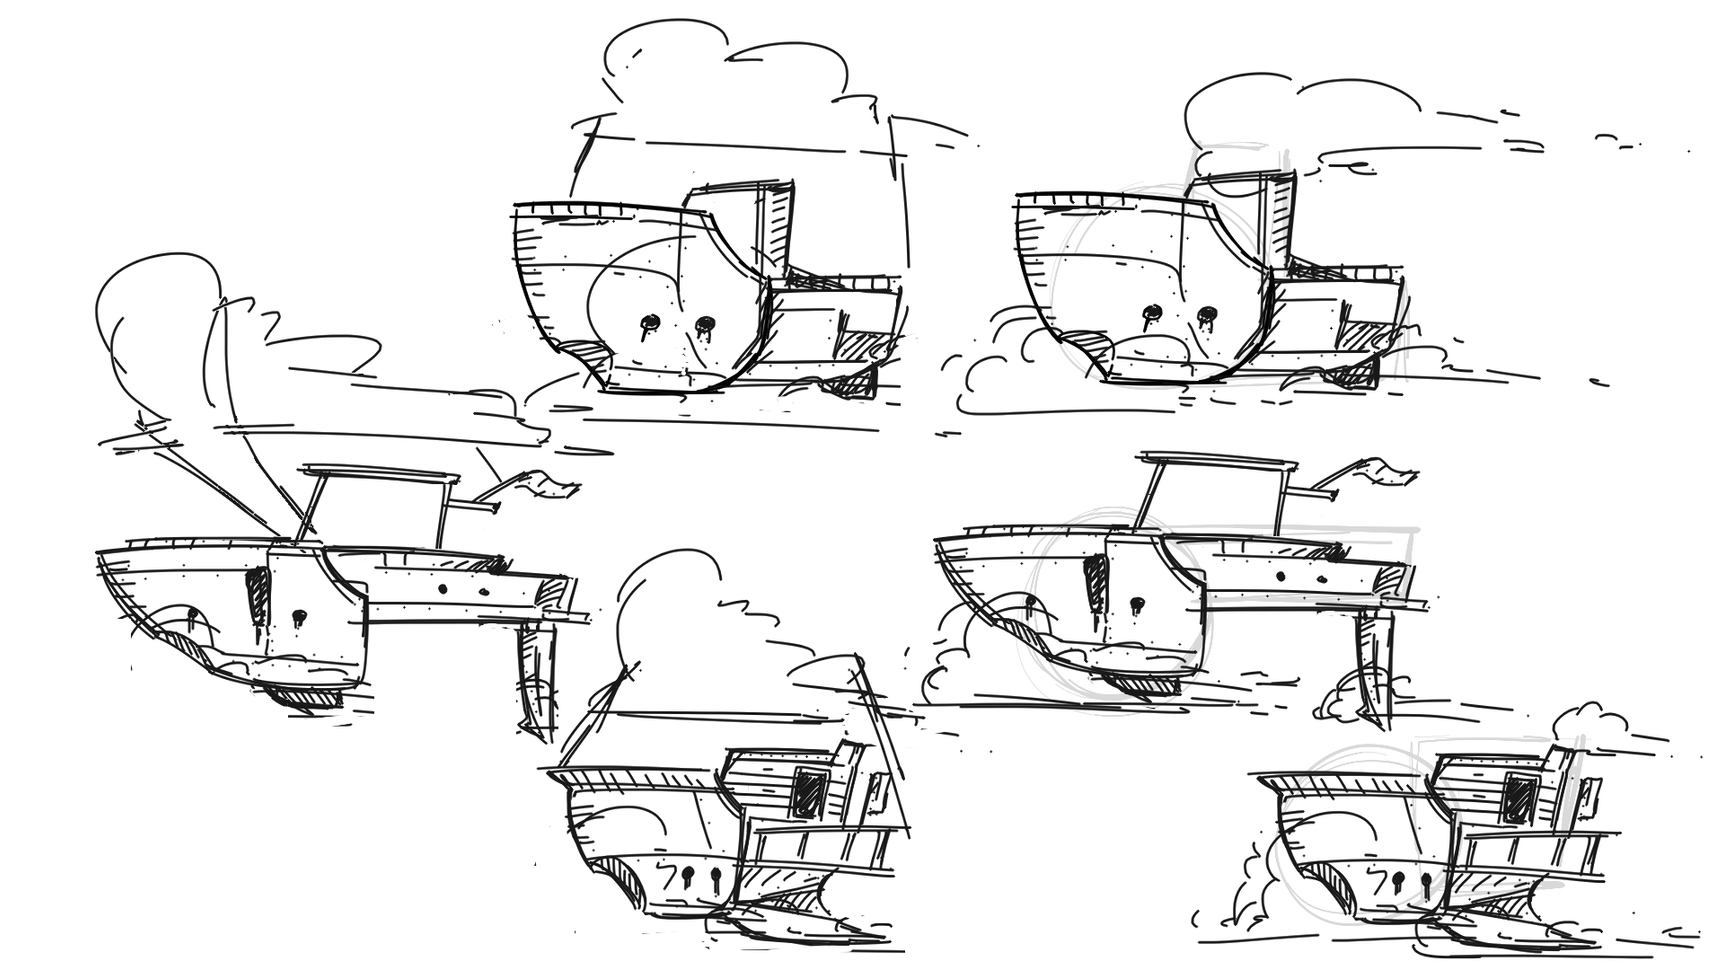 Initial ship sketches